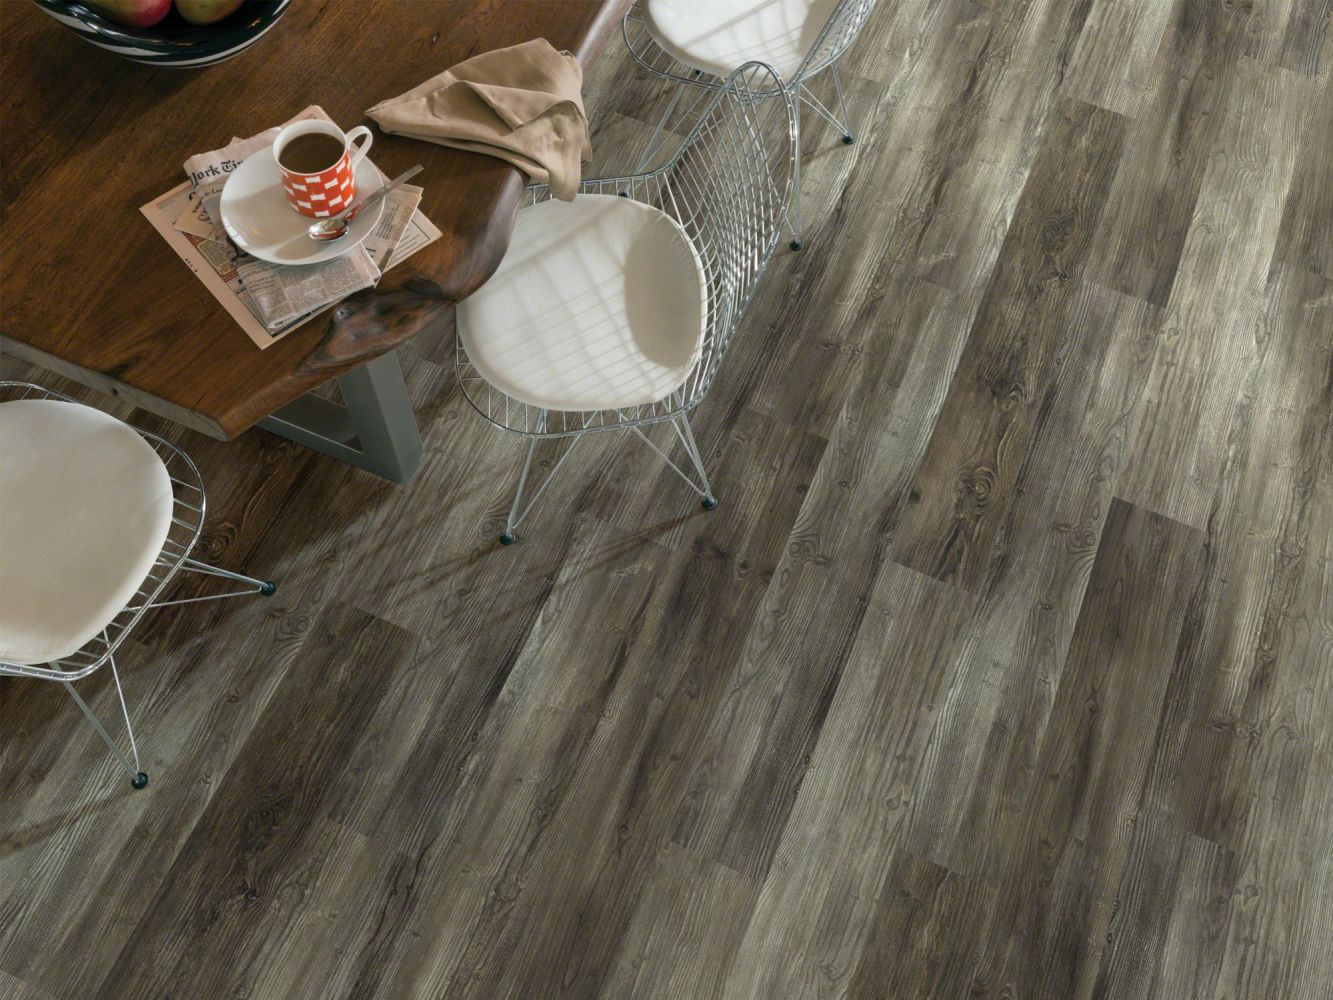 Shaw Floors Resilient Property Solutions Ravenna Plus Harbour Bay 05030_VE344